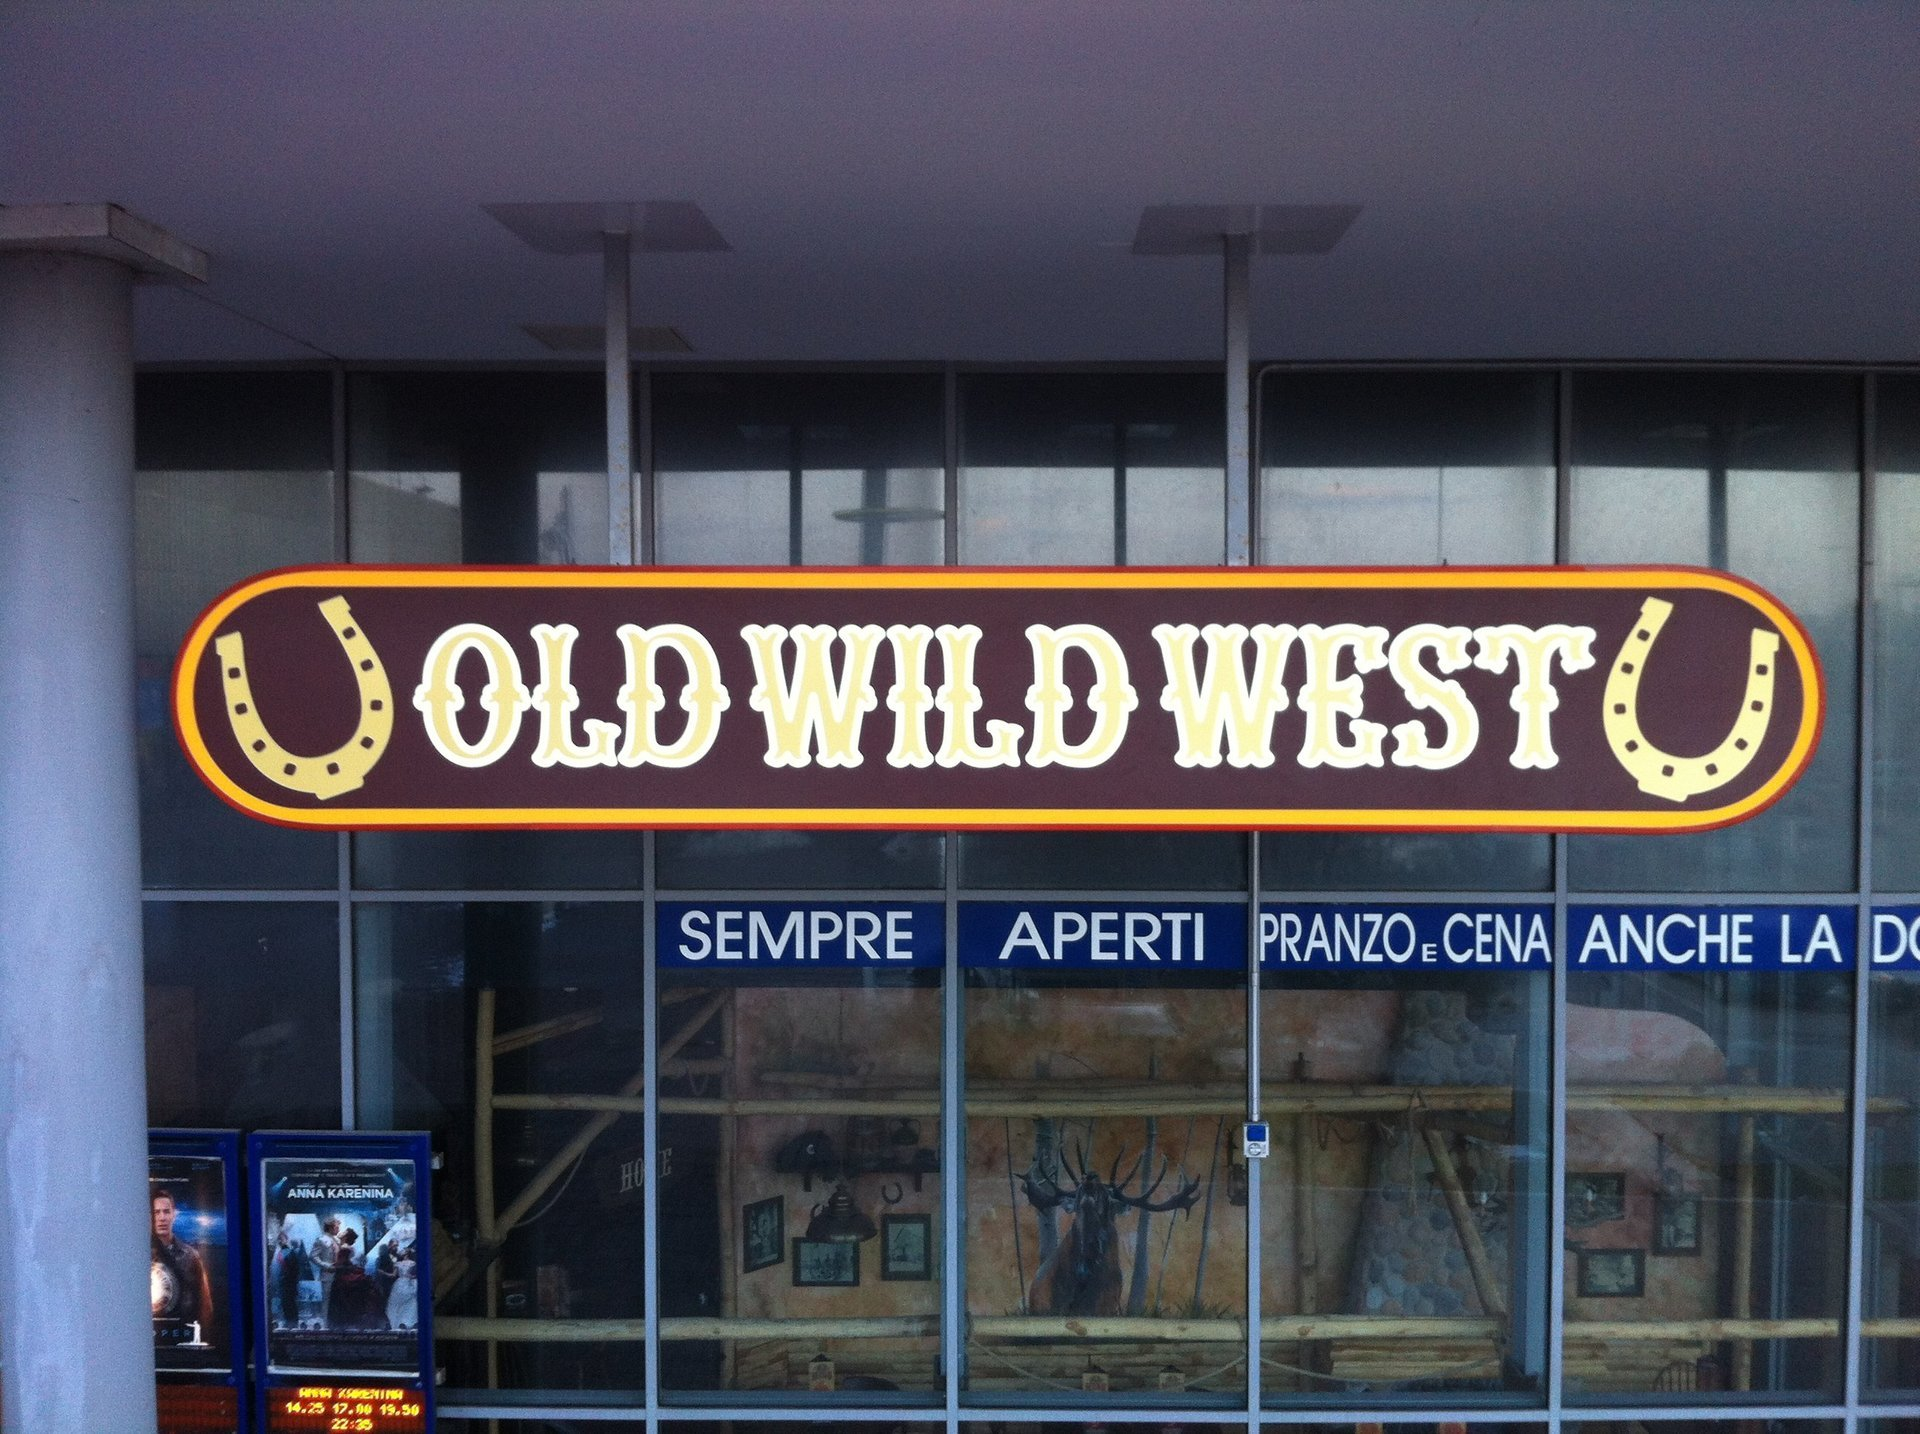 scritta luminosa old wild west